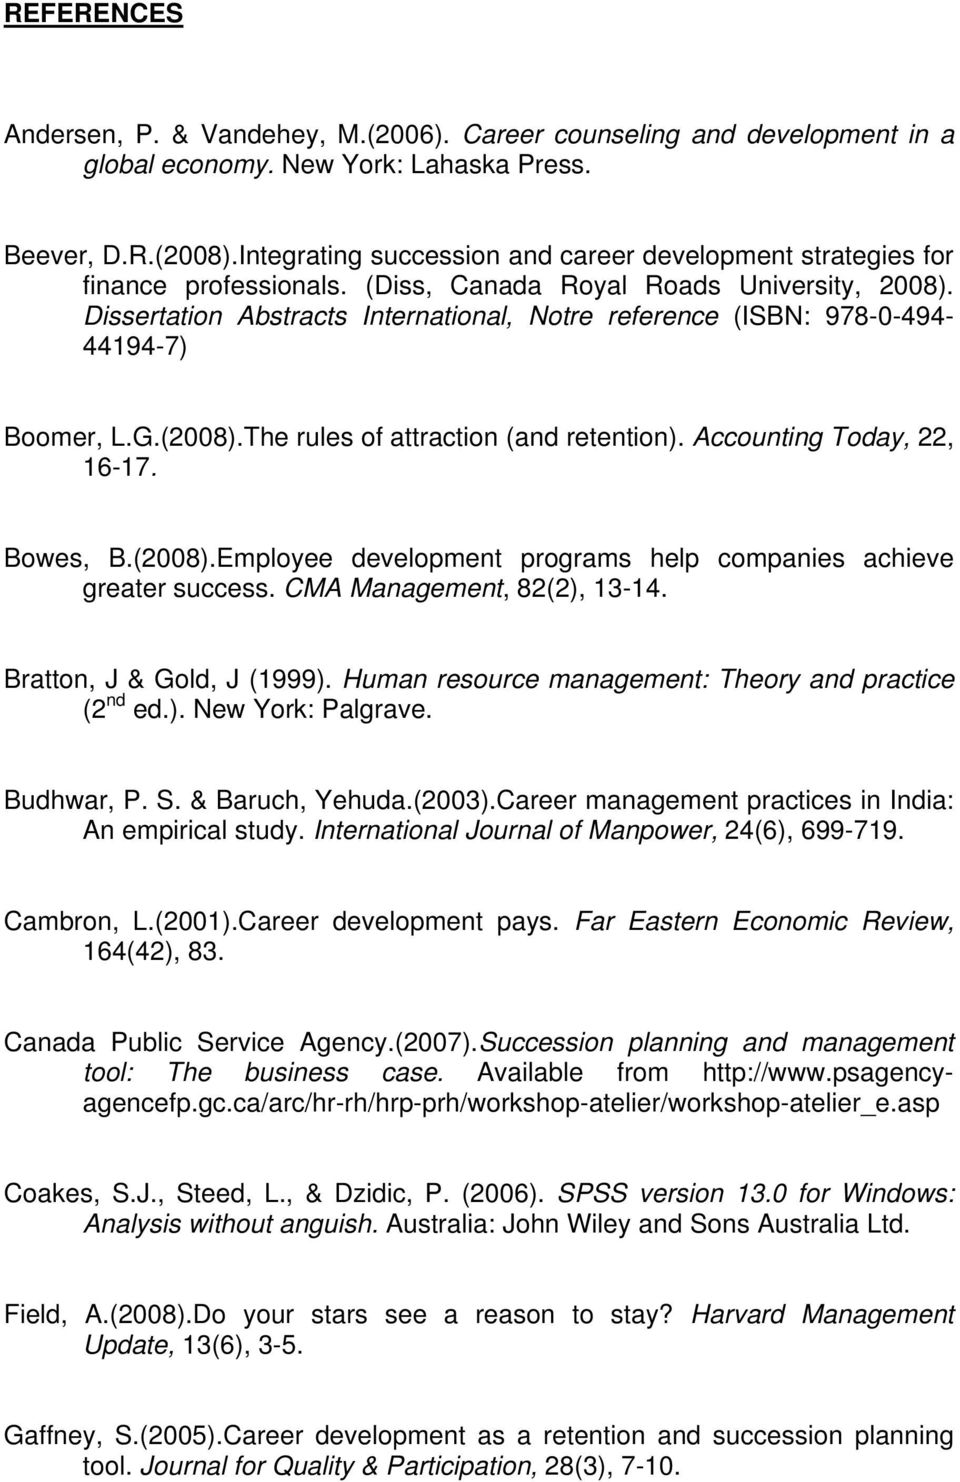 Dissertation Abstracts International, Notre reference (ISBN: 978-0-494-44194-7) Boomer, L.G.(2008).The rules of attraction (and retention). Accounting Today, 22, 16-17. Bowes, B.(2008).Employee development programs help companies achieve greater success.